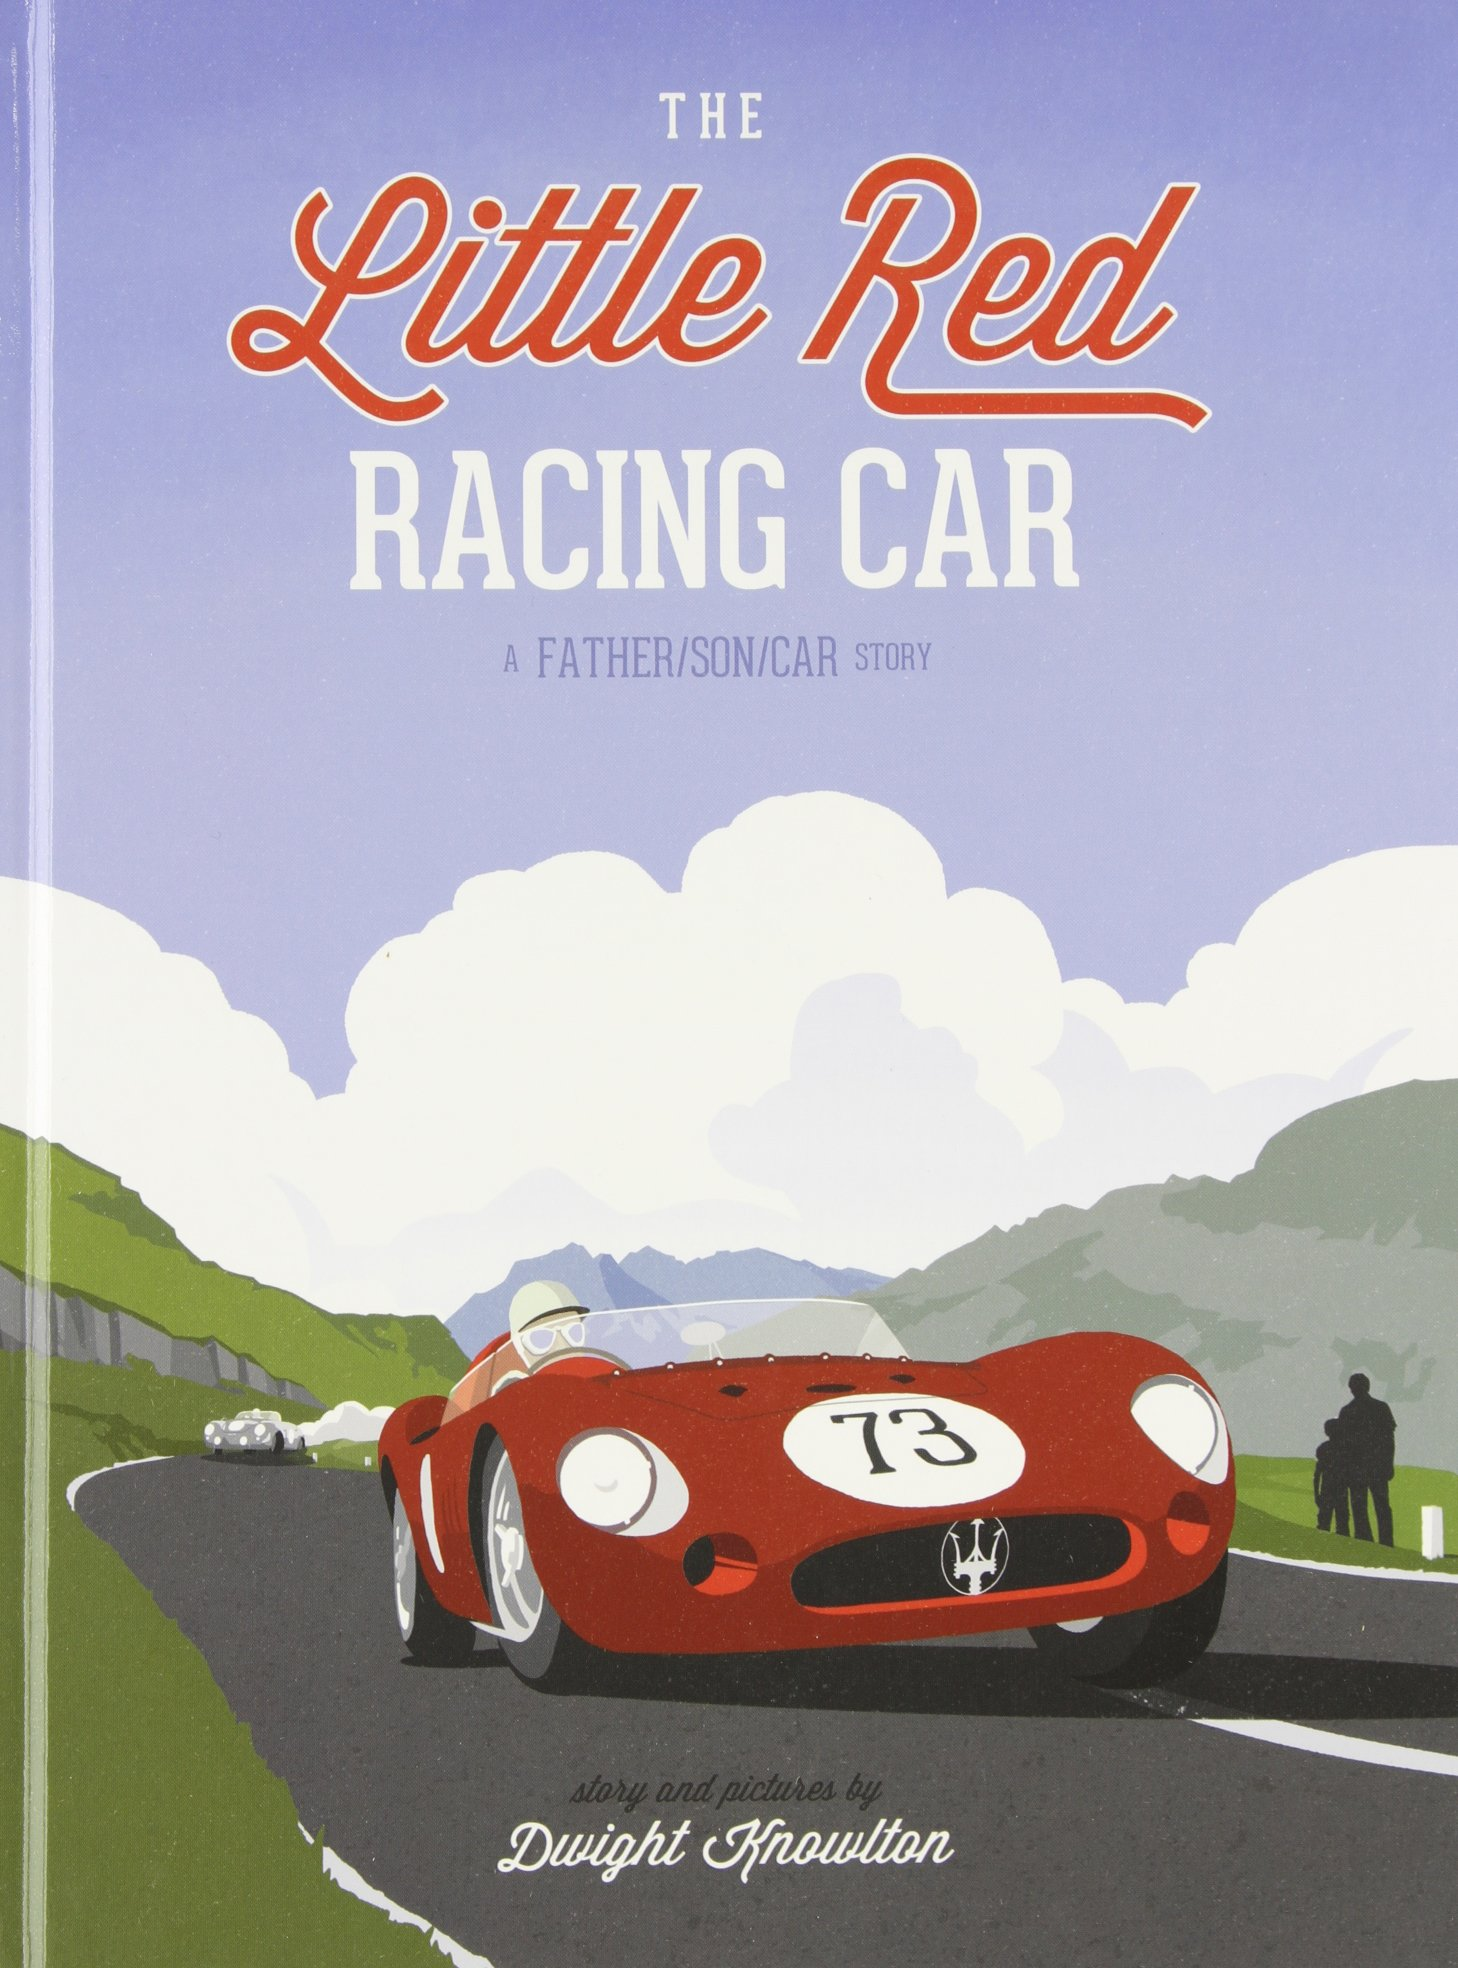 The Little Red Racing Car: Dwight Knowlton: 9780989294904: Amazon ...